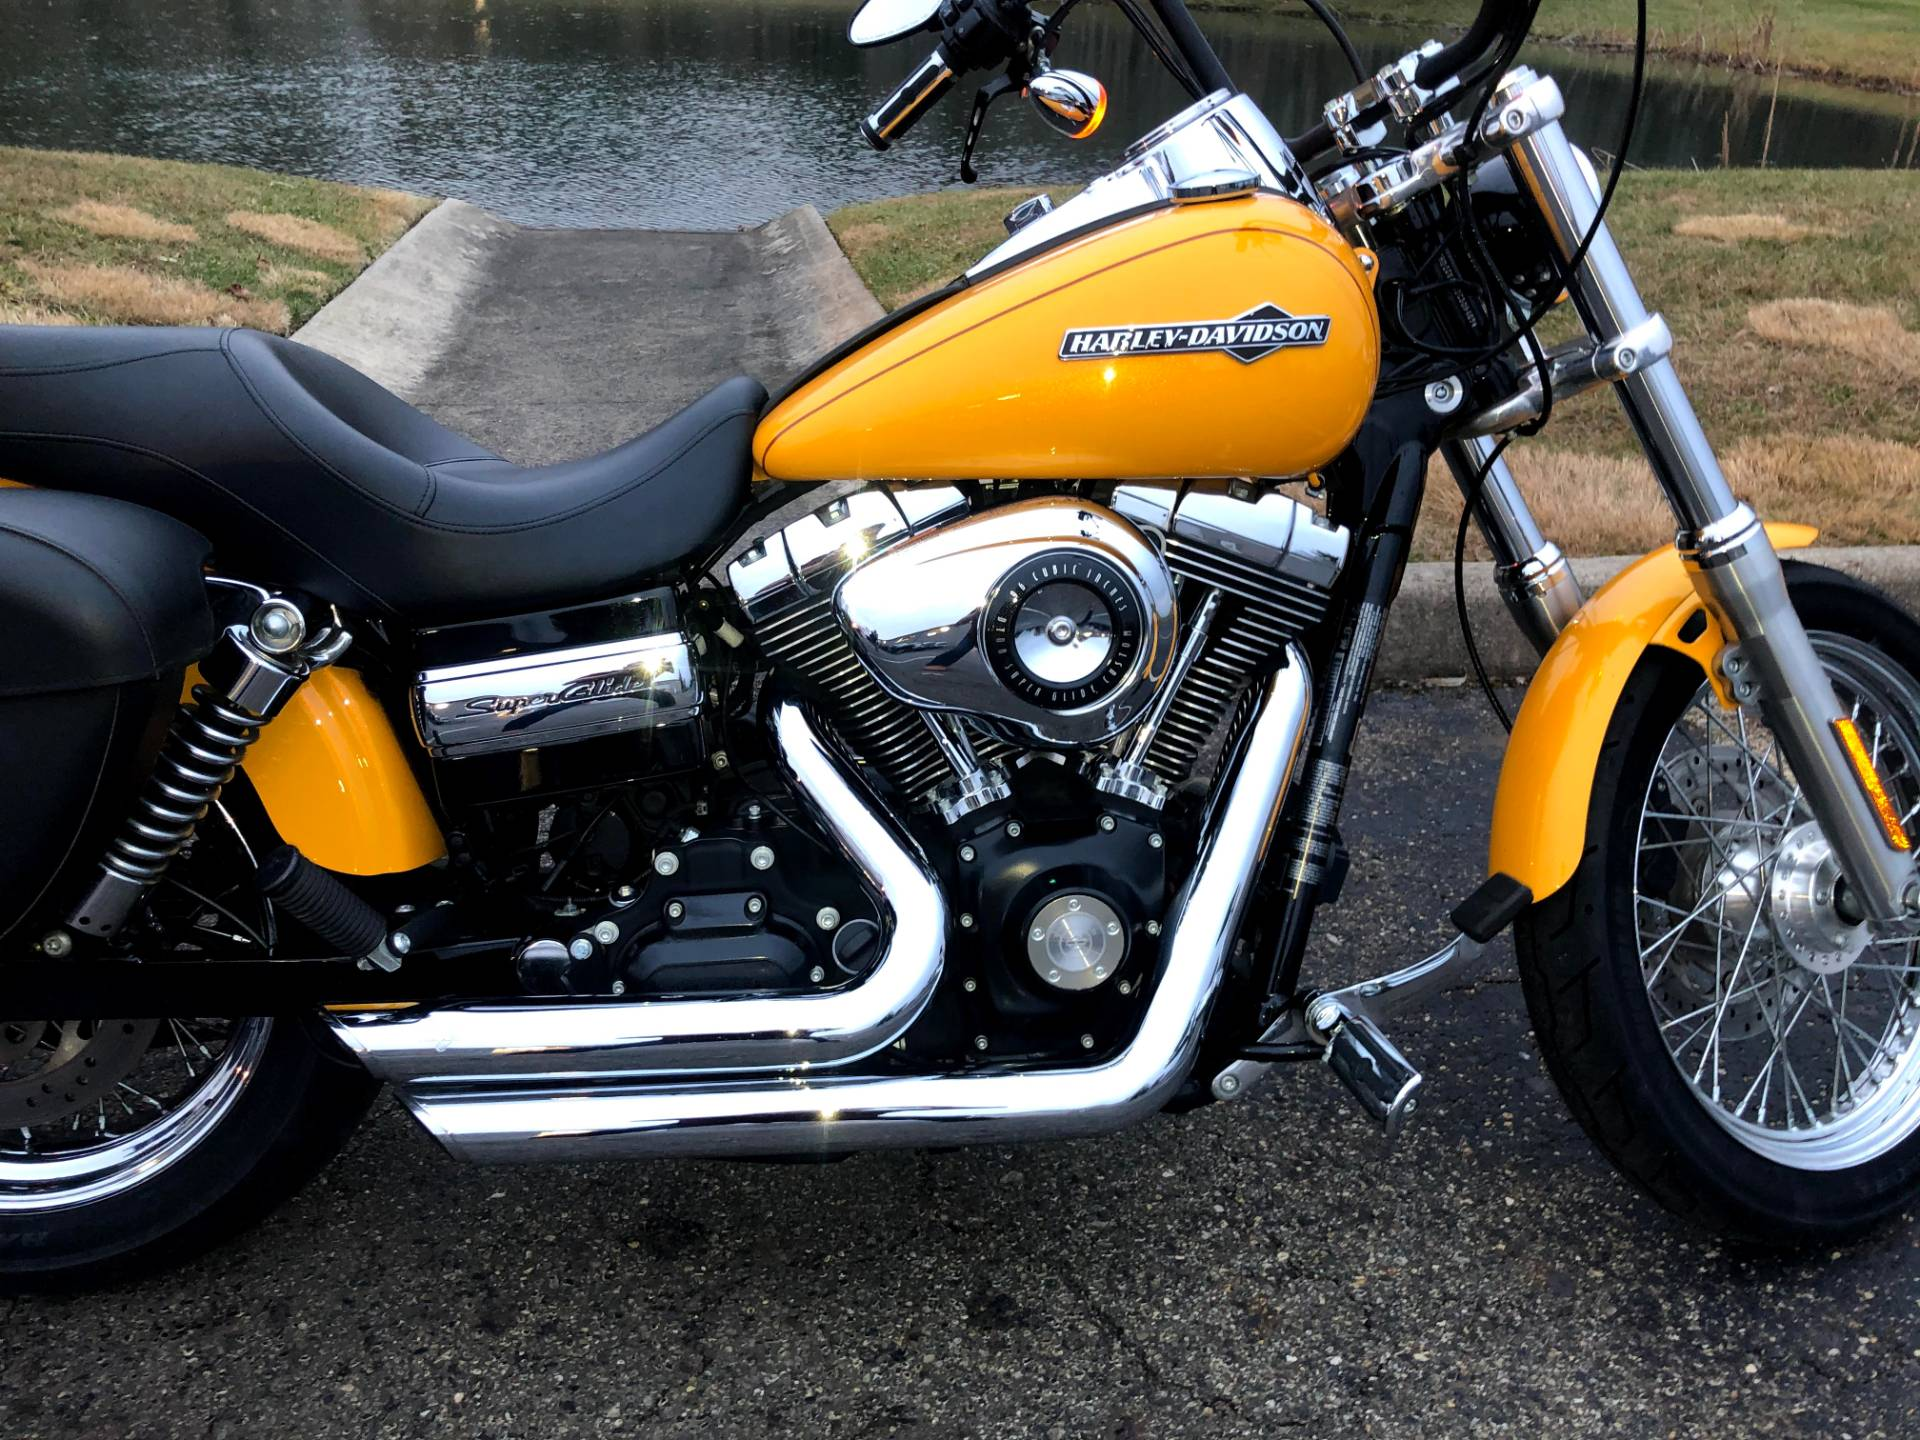 2013 Harley-Davidson Dyna® Super Glide® Custom in Sunbury, Ohio - Photo 9